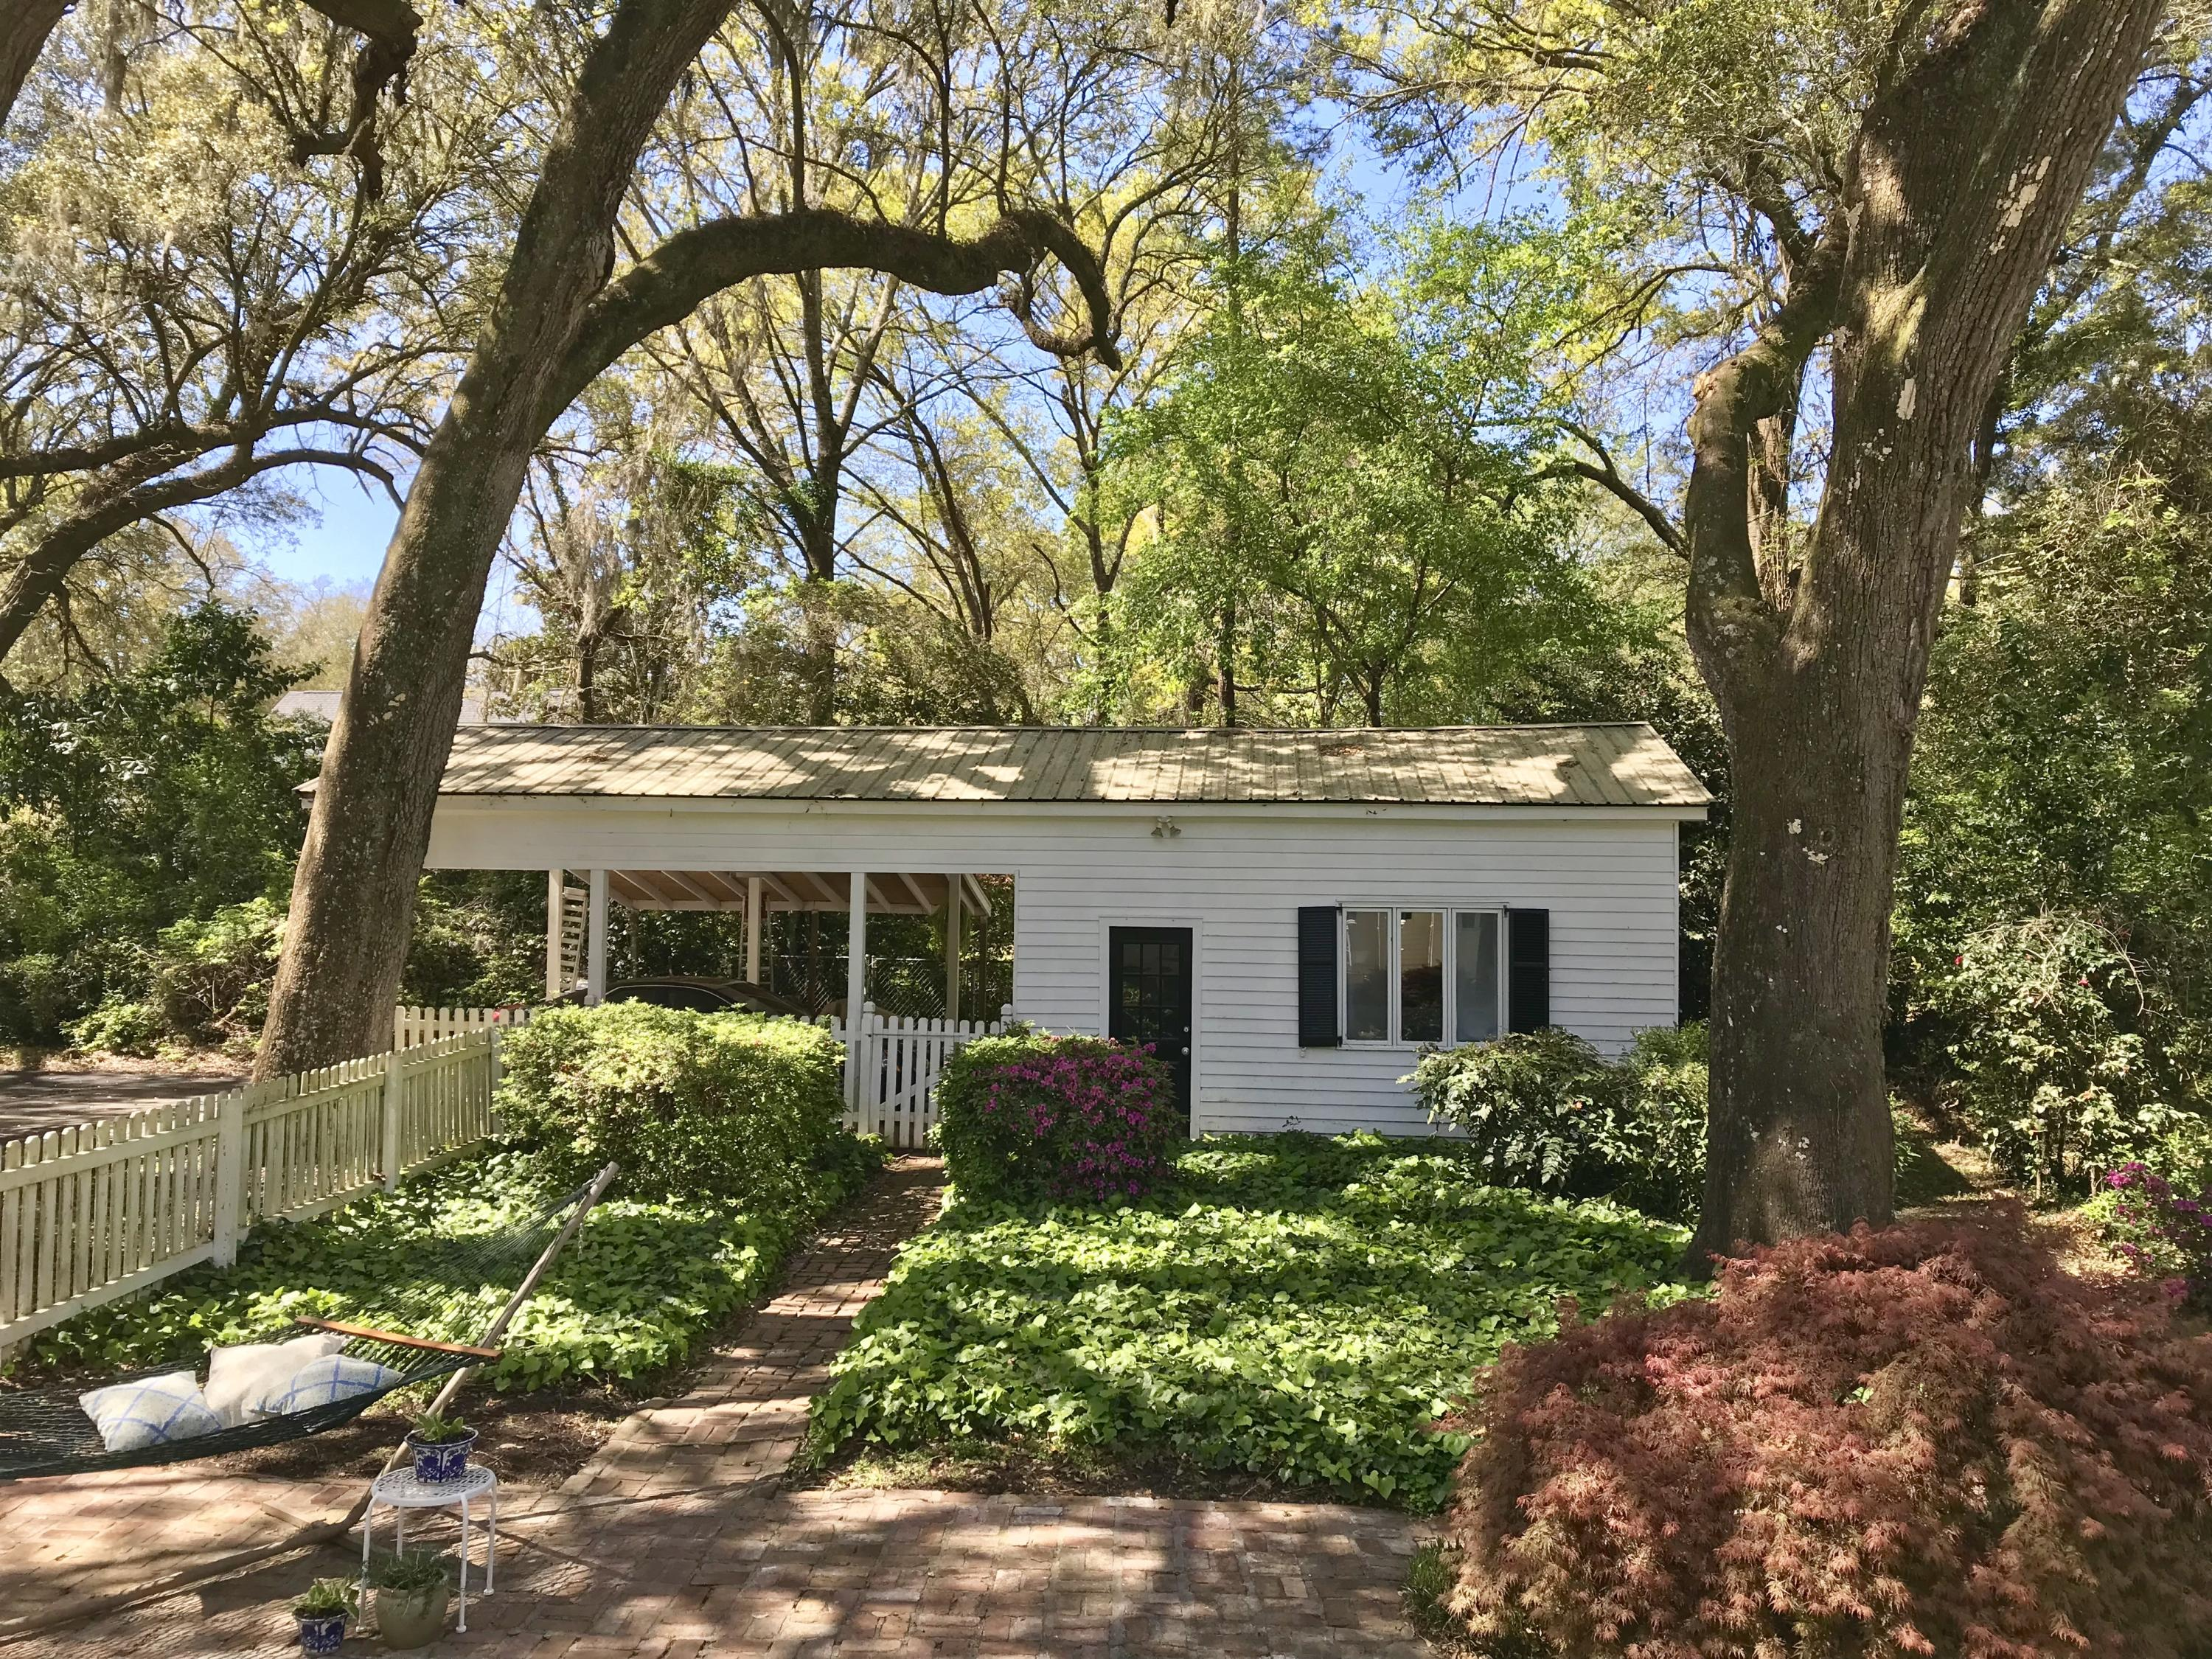 Historic District Homes For Sale - 115 Briarwood, Summerville, SC - 5